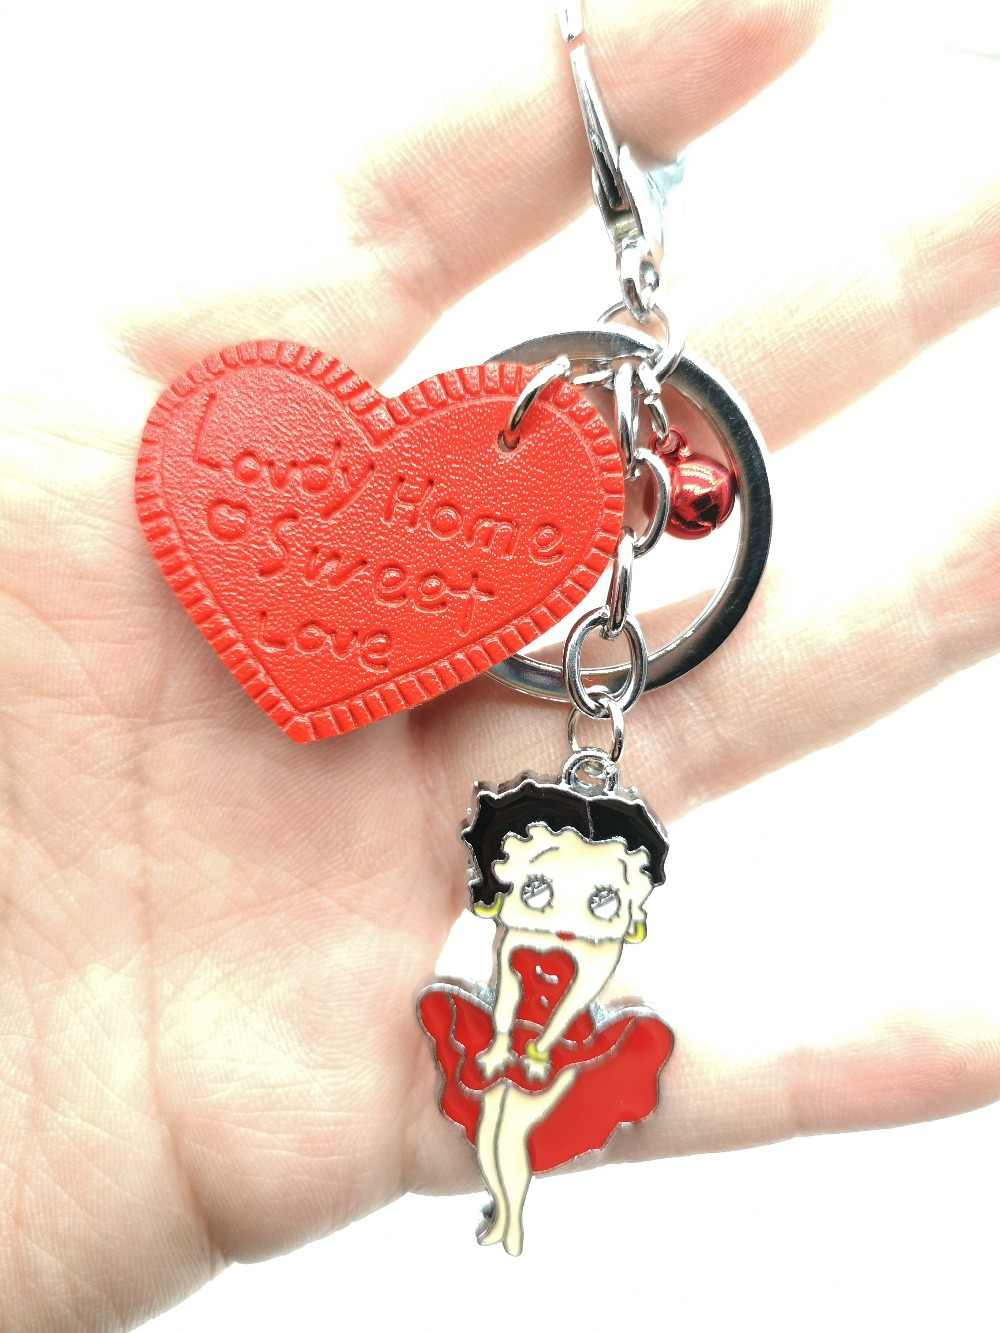 Free shipping New 1pcs cartoon red love heart Jingle bells betty boop Charms Pendants Key Chain Keychains party toy kids gifts